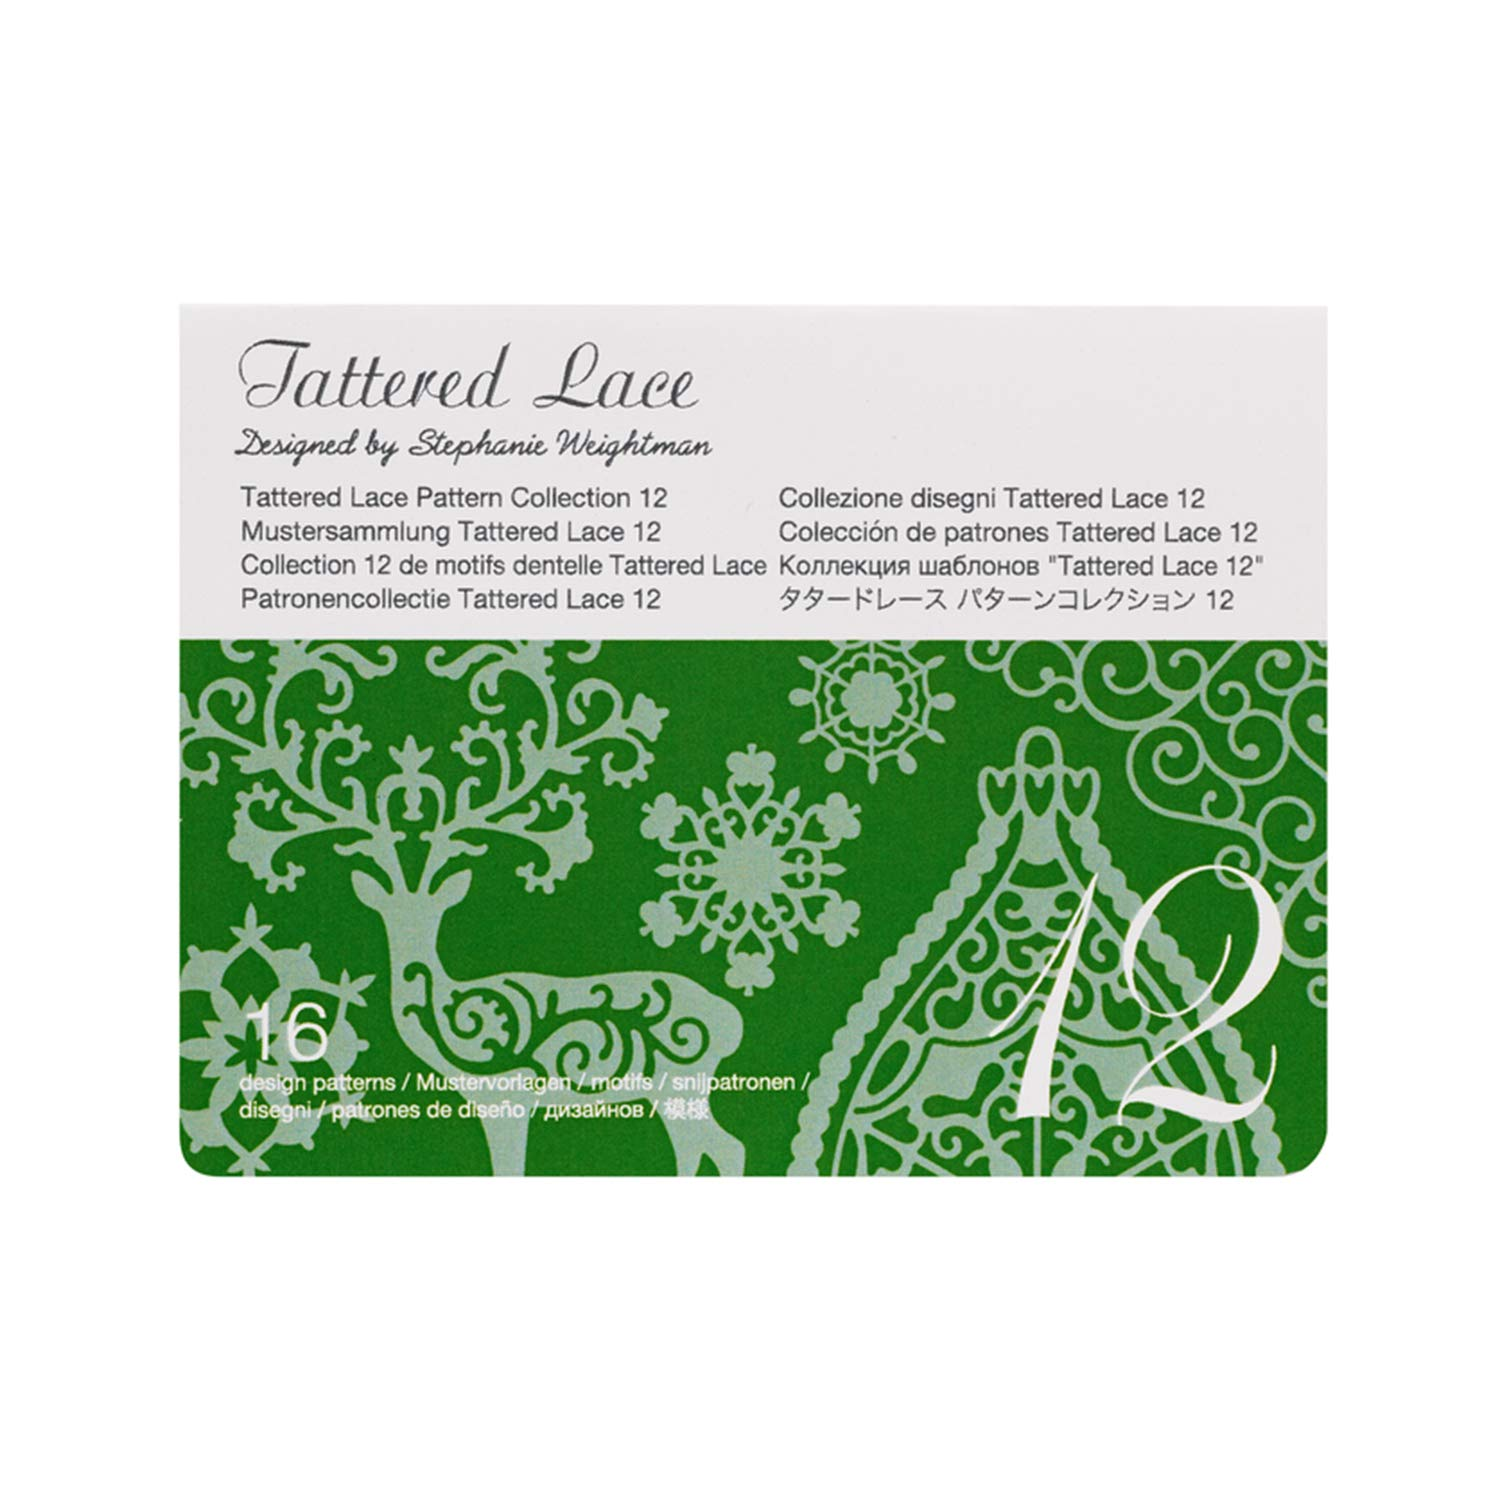 Brother CATTLP12 ScanNCut Series Tattered Lace 12 Pattern Collection, White